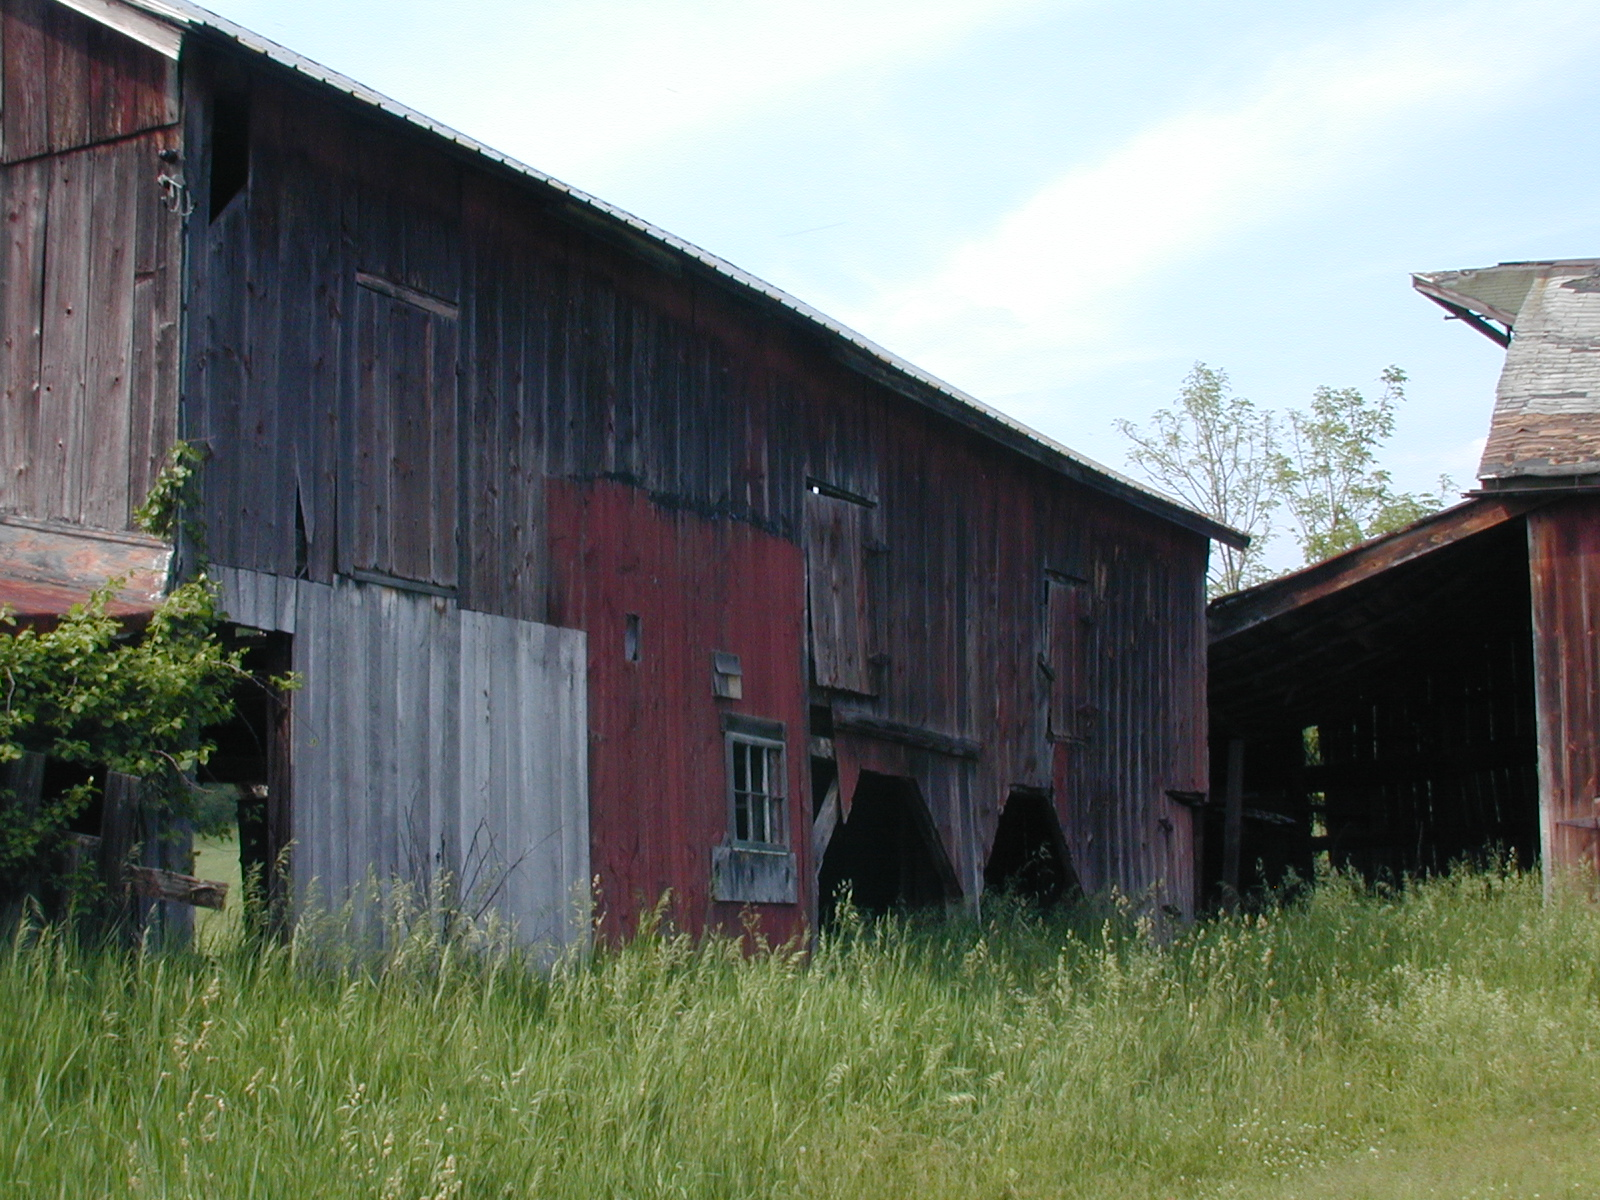 Third unknown house, barns